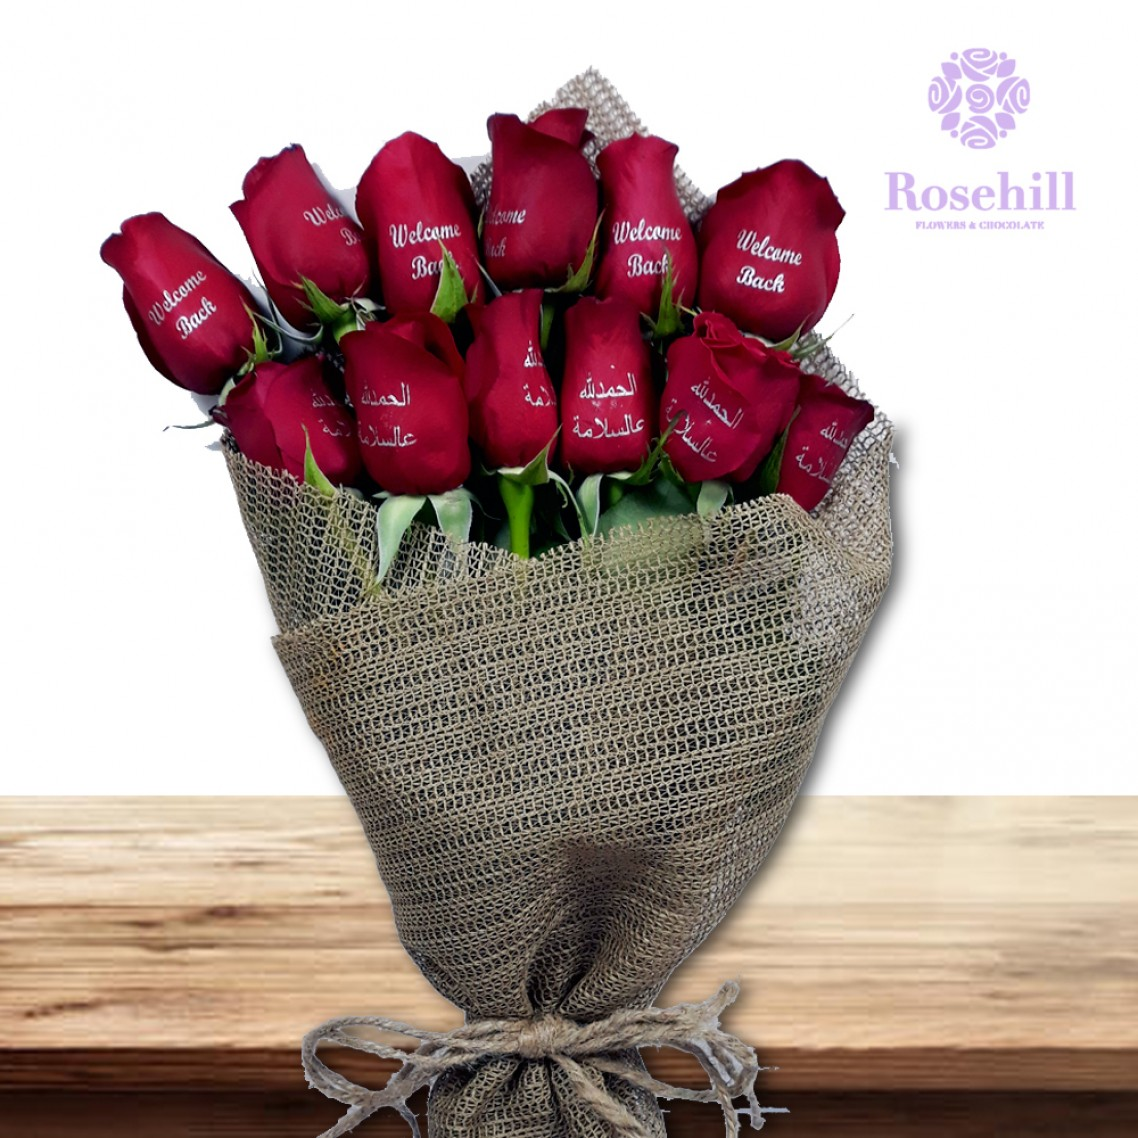 1524660121-h-250-_Rosehill's Welcome Back Bouquet- Red.jpg